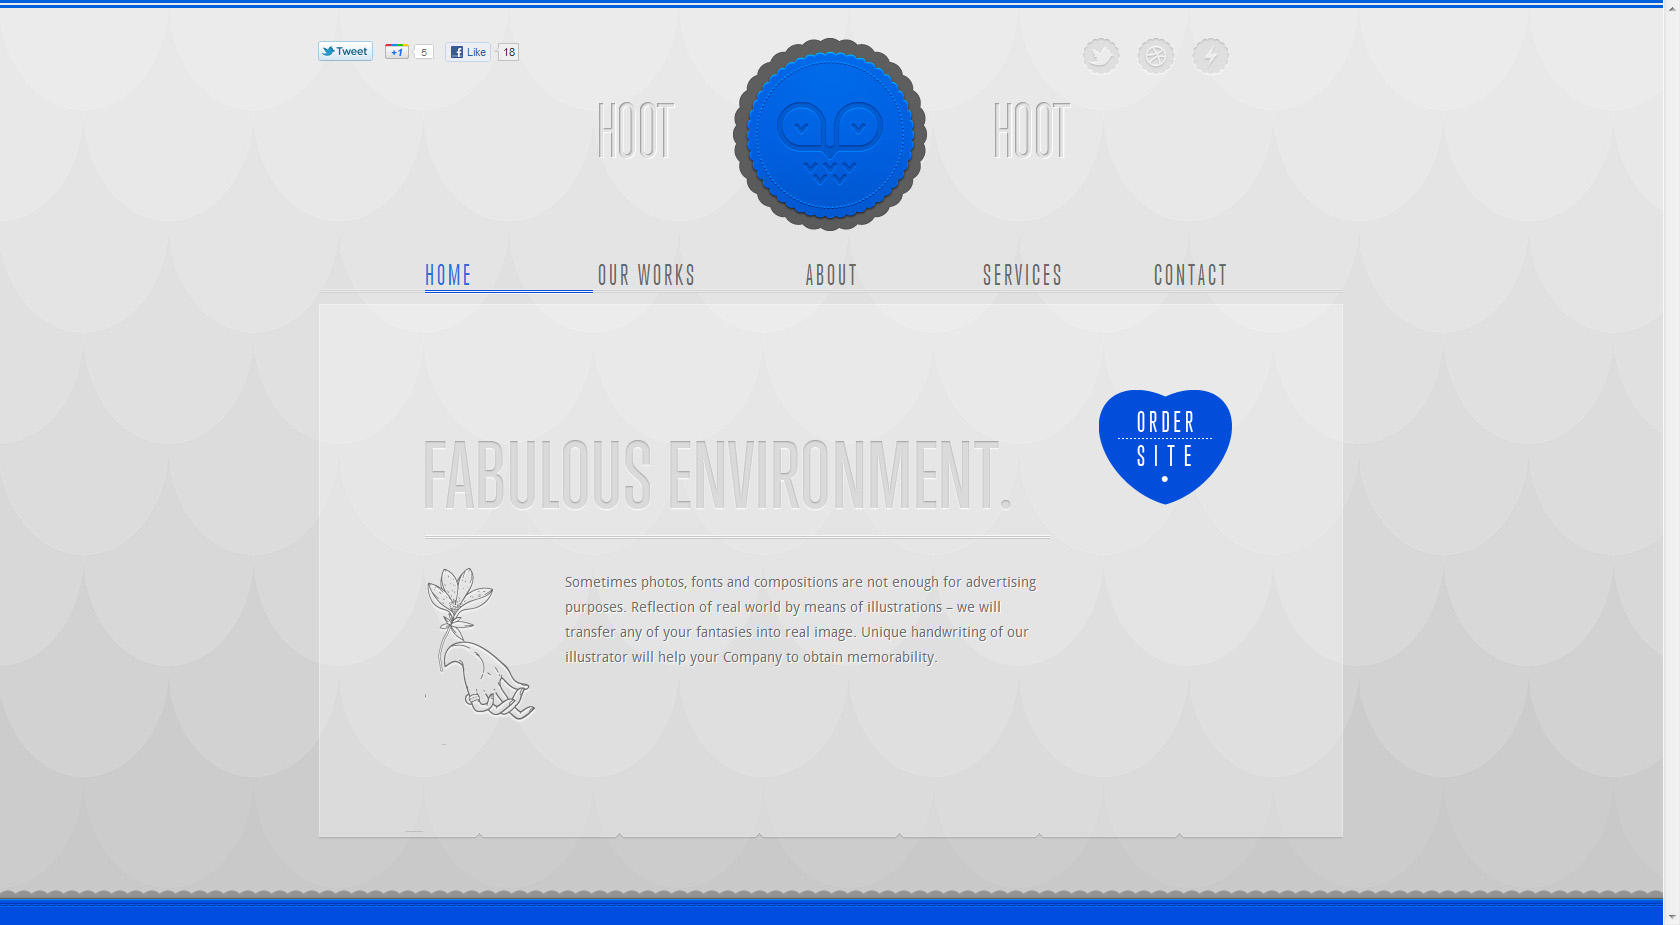 Hoot-Hoot Studio Website Screenshot